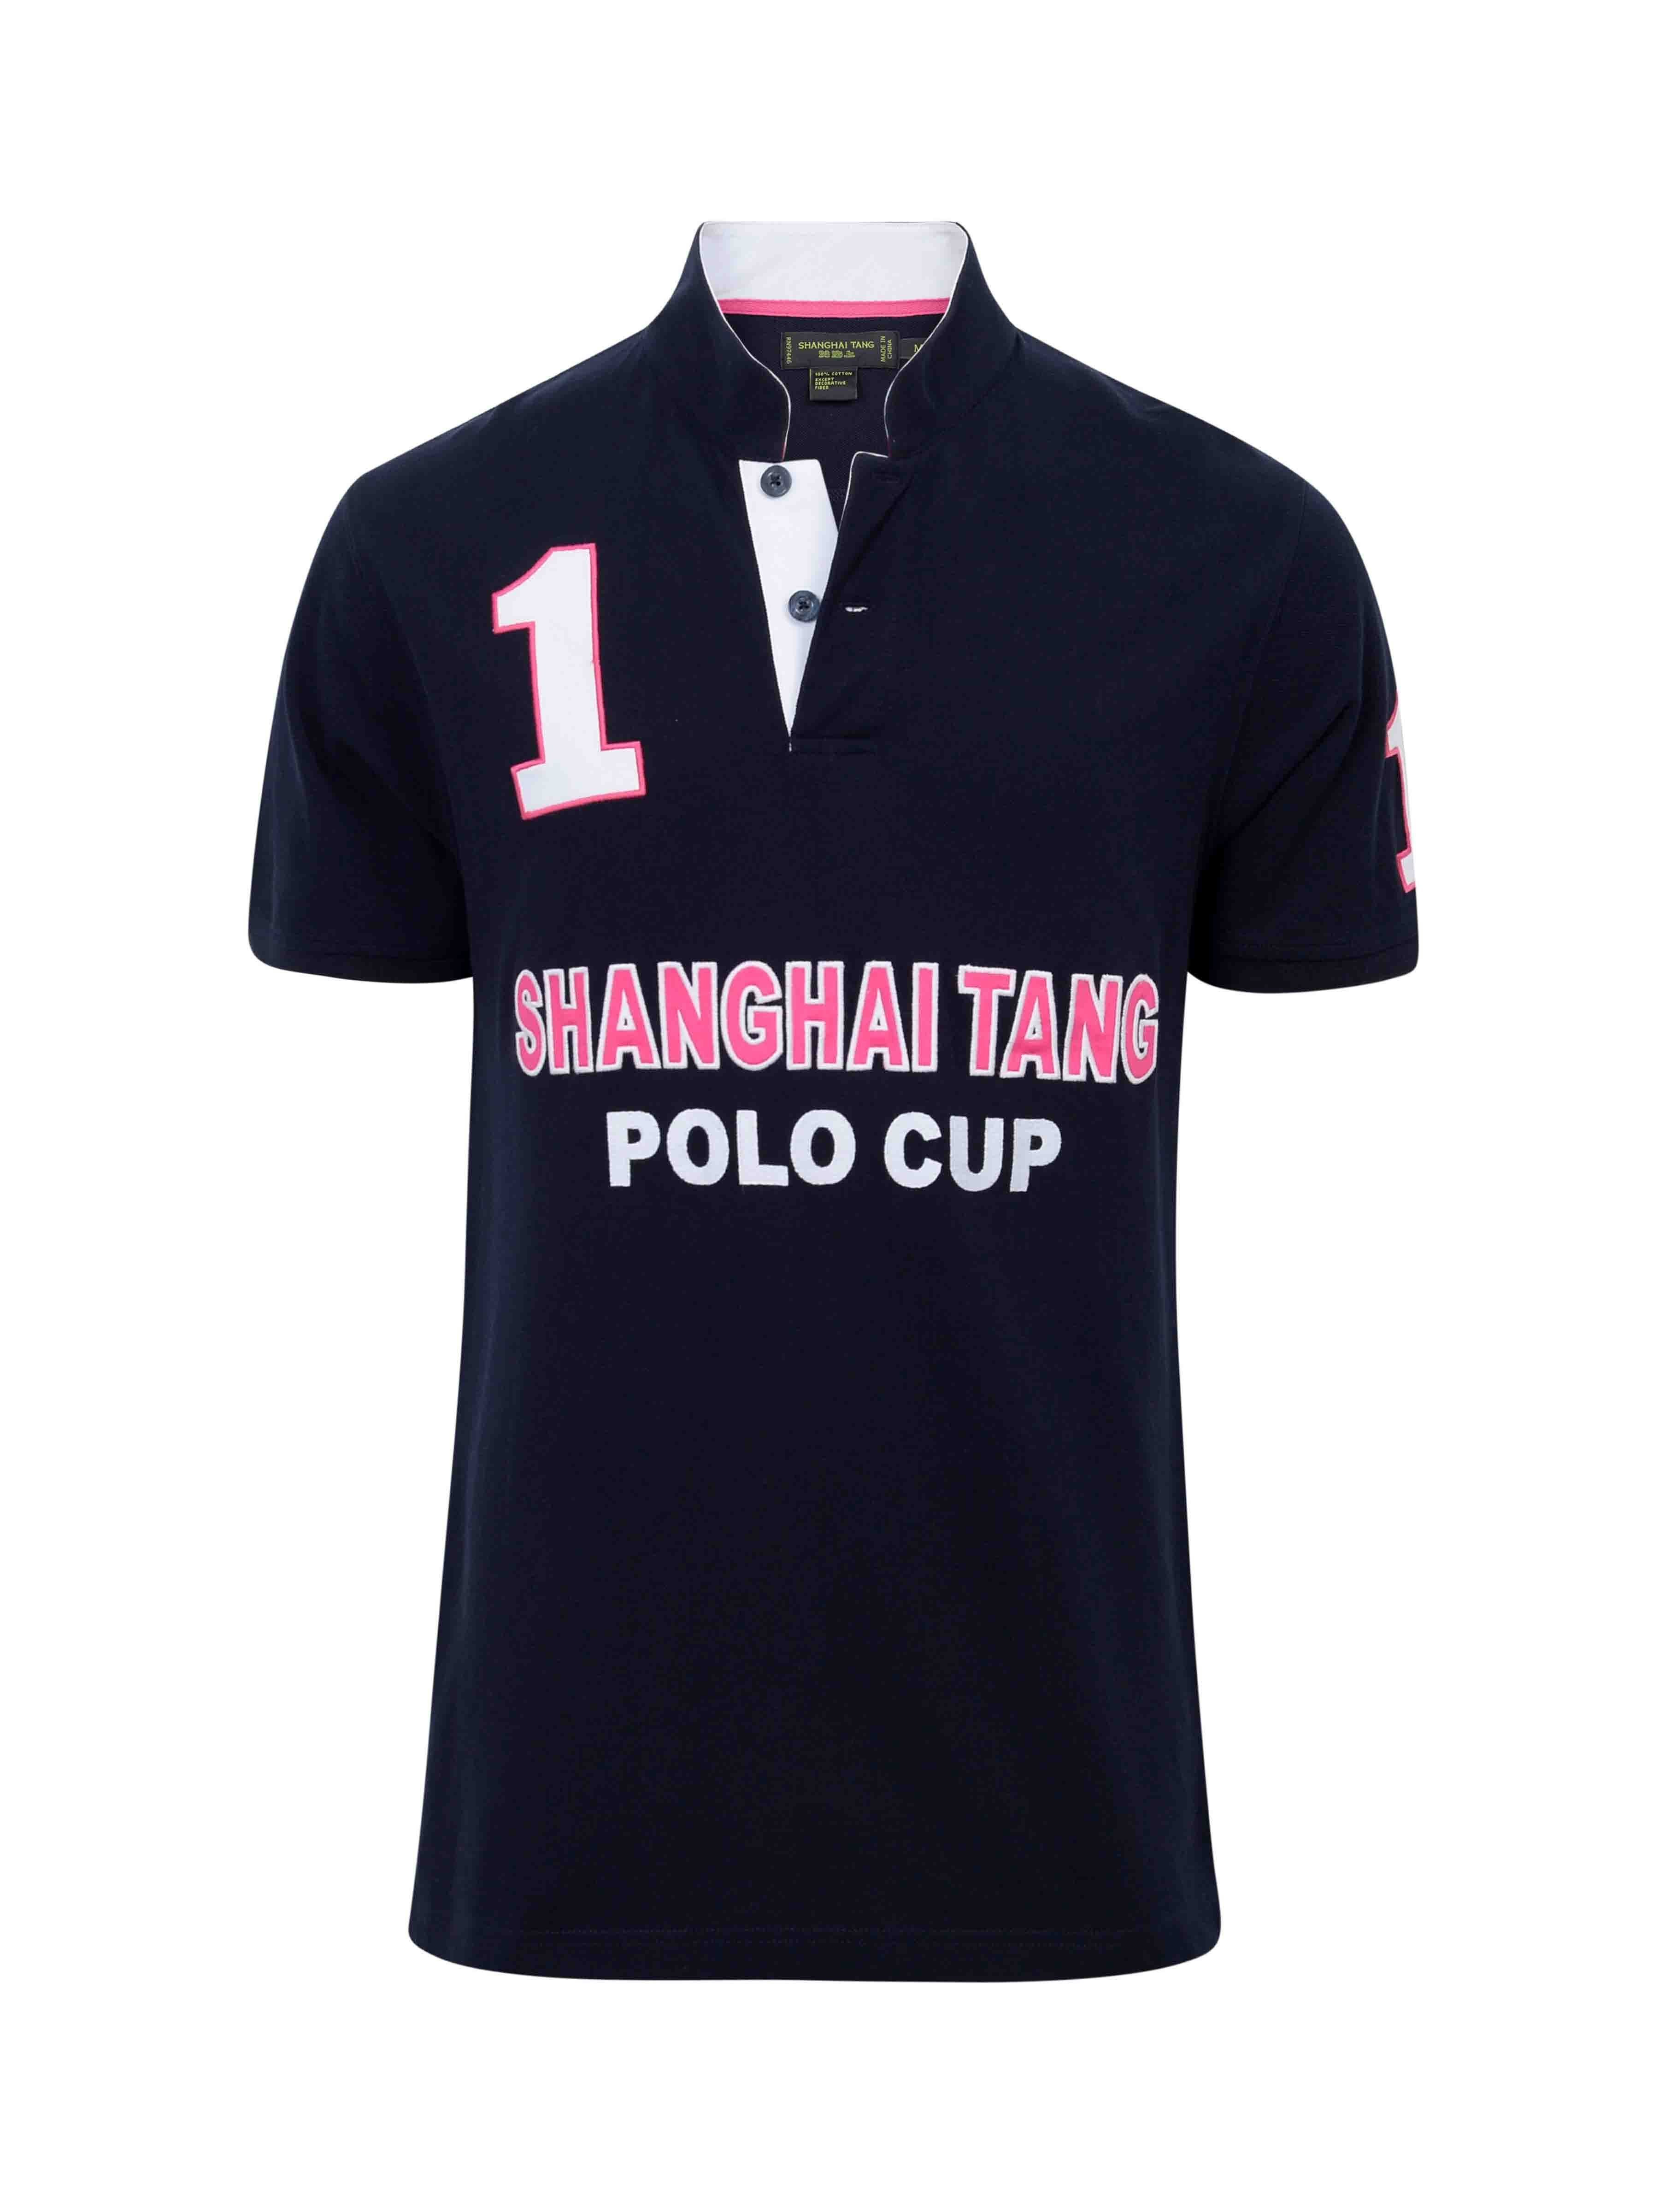 Shanghai Tang Polo Cup Cotton Piqué Top